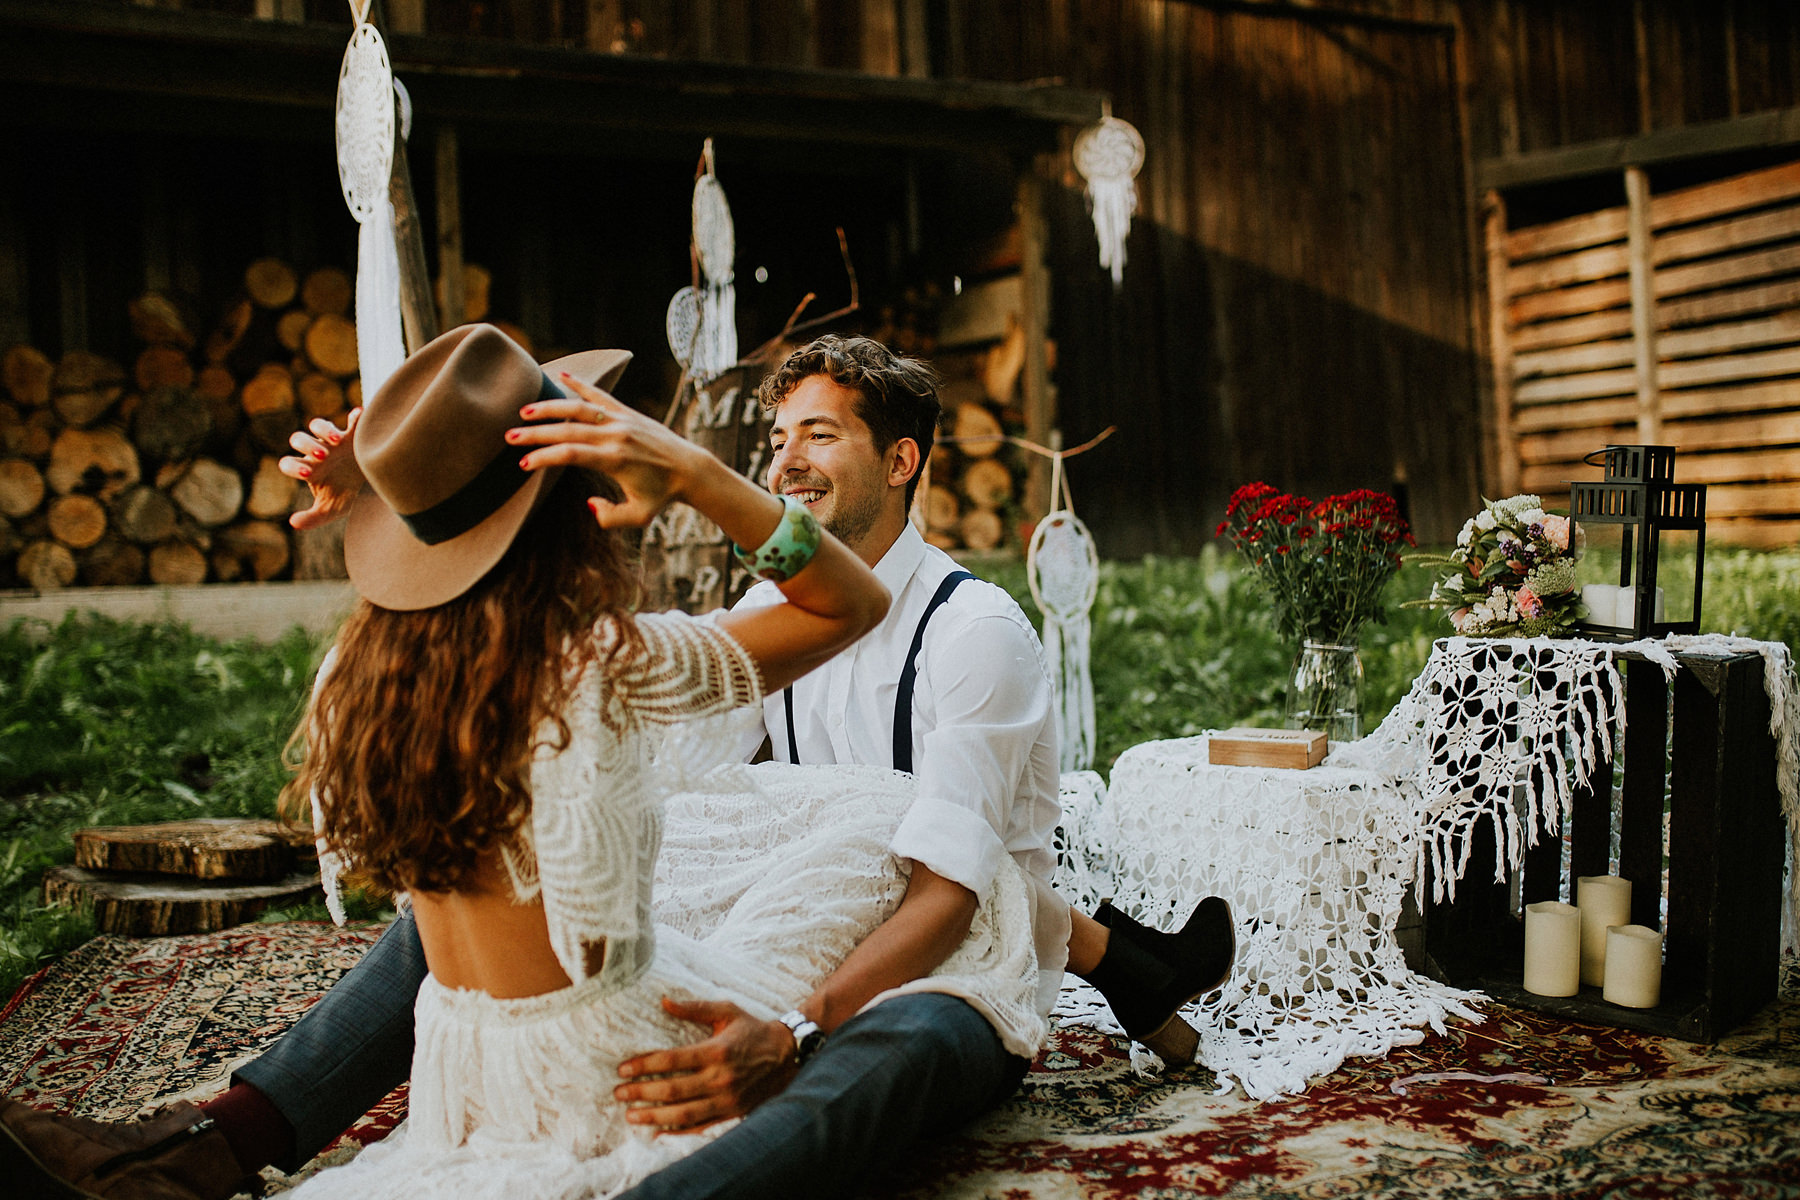 Boho wedding photography in Krakow